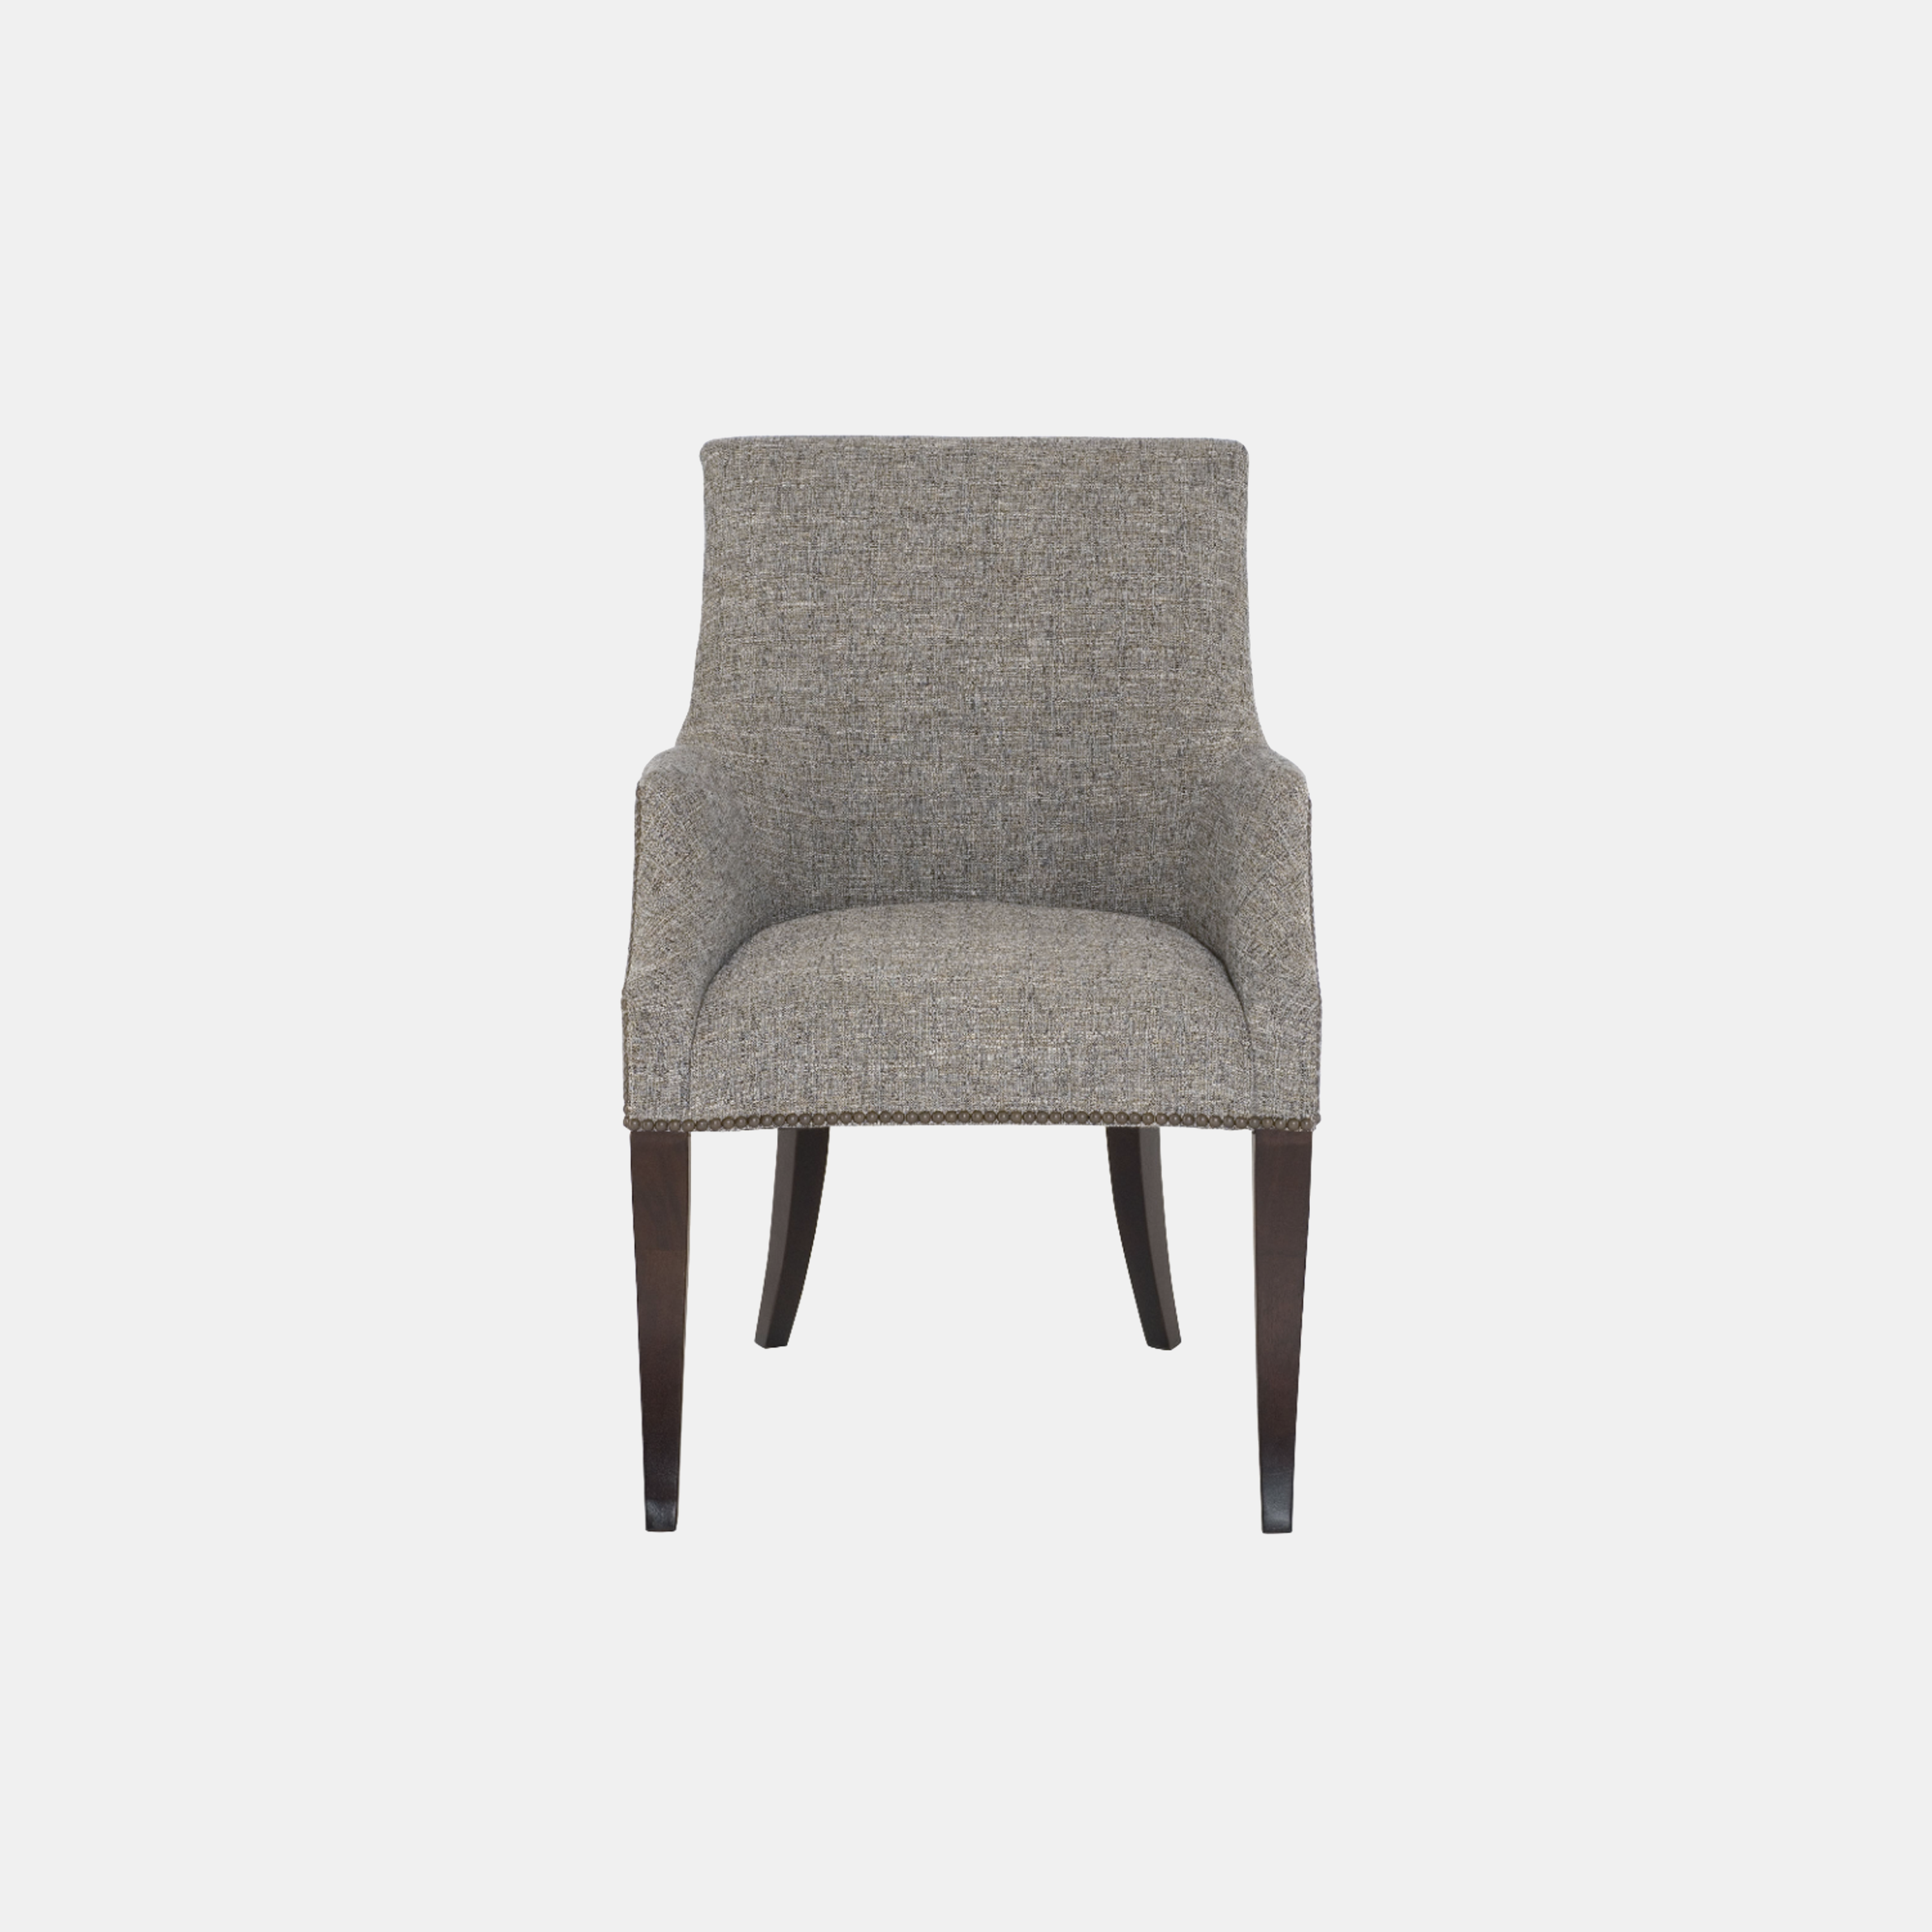 "Keeley Dining Chair  24""w x 27-1/4""d x 38""h Legs available in chalk, smoke, or cocoa (shown). Available in fabric, leather, or COM. Also available as counter stool or bar stool. SKU3321BHT"